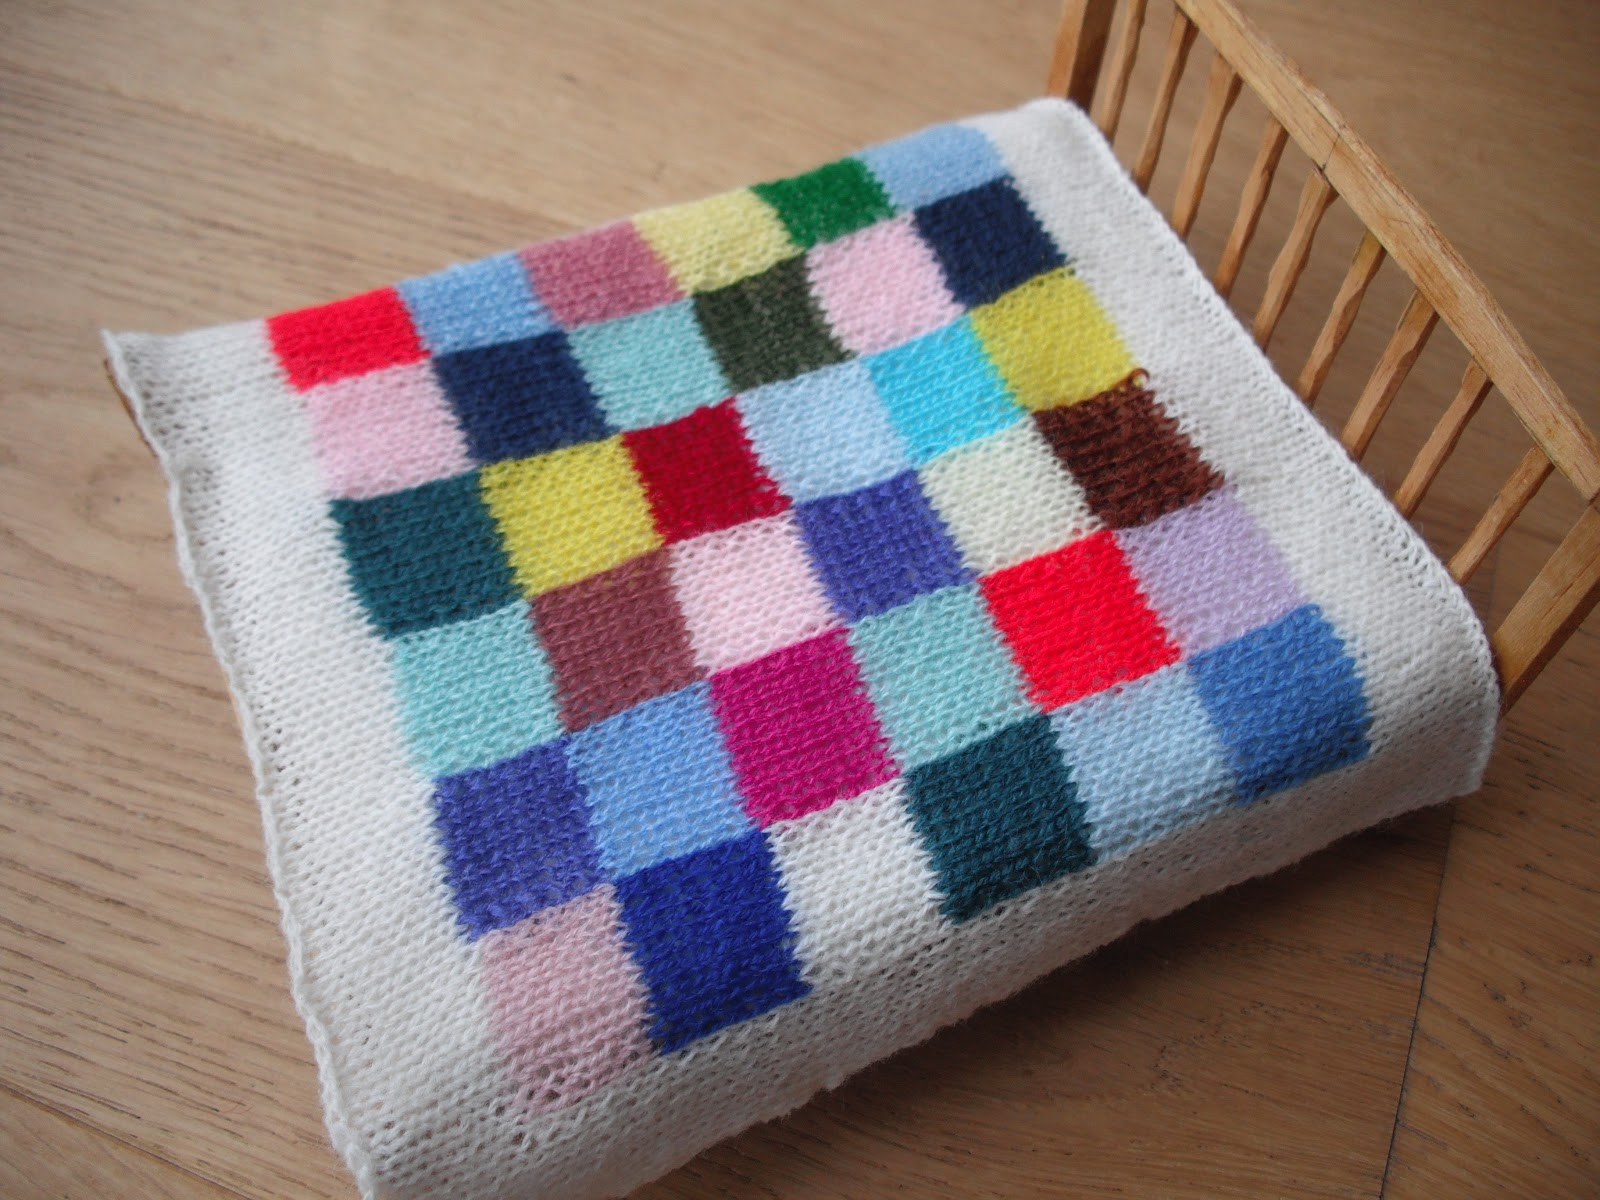 Free Knitted Patchwork Blanket Patterns : bitstobuy: Tiny knitted patchwork blankets for the dolls house